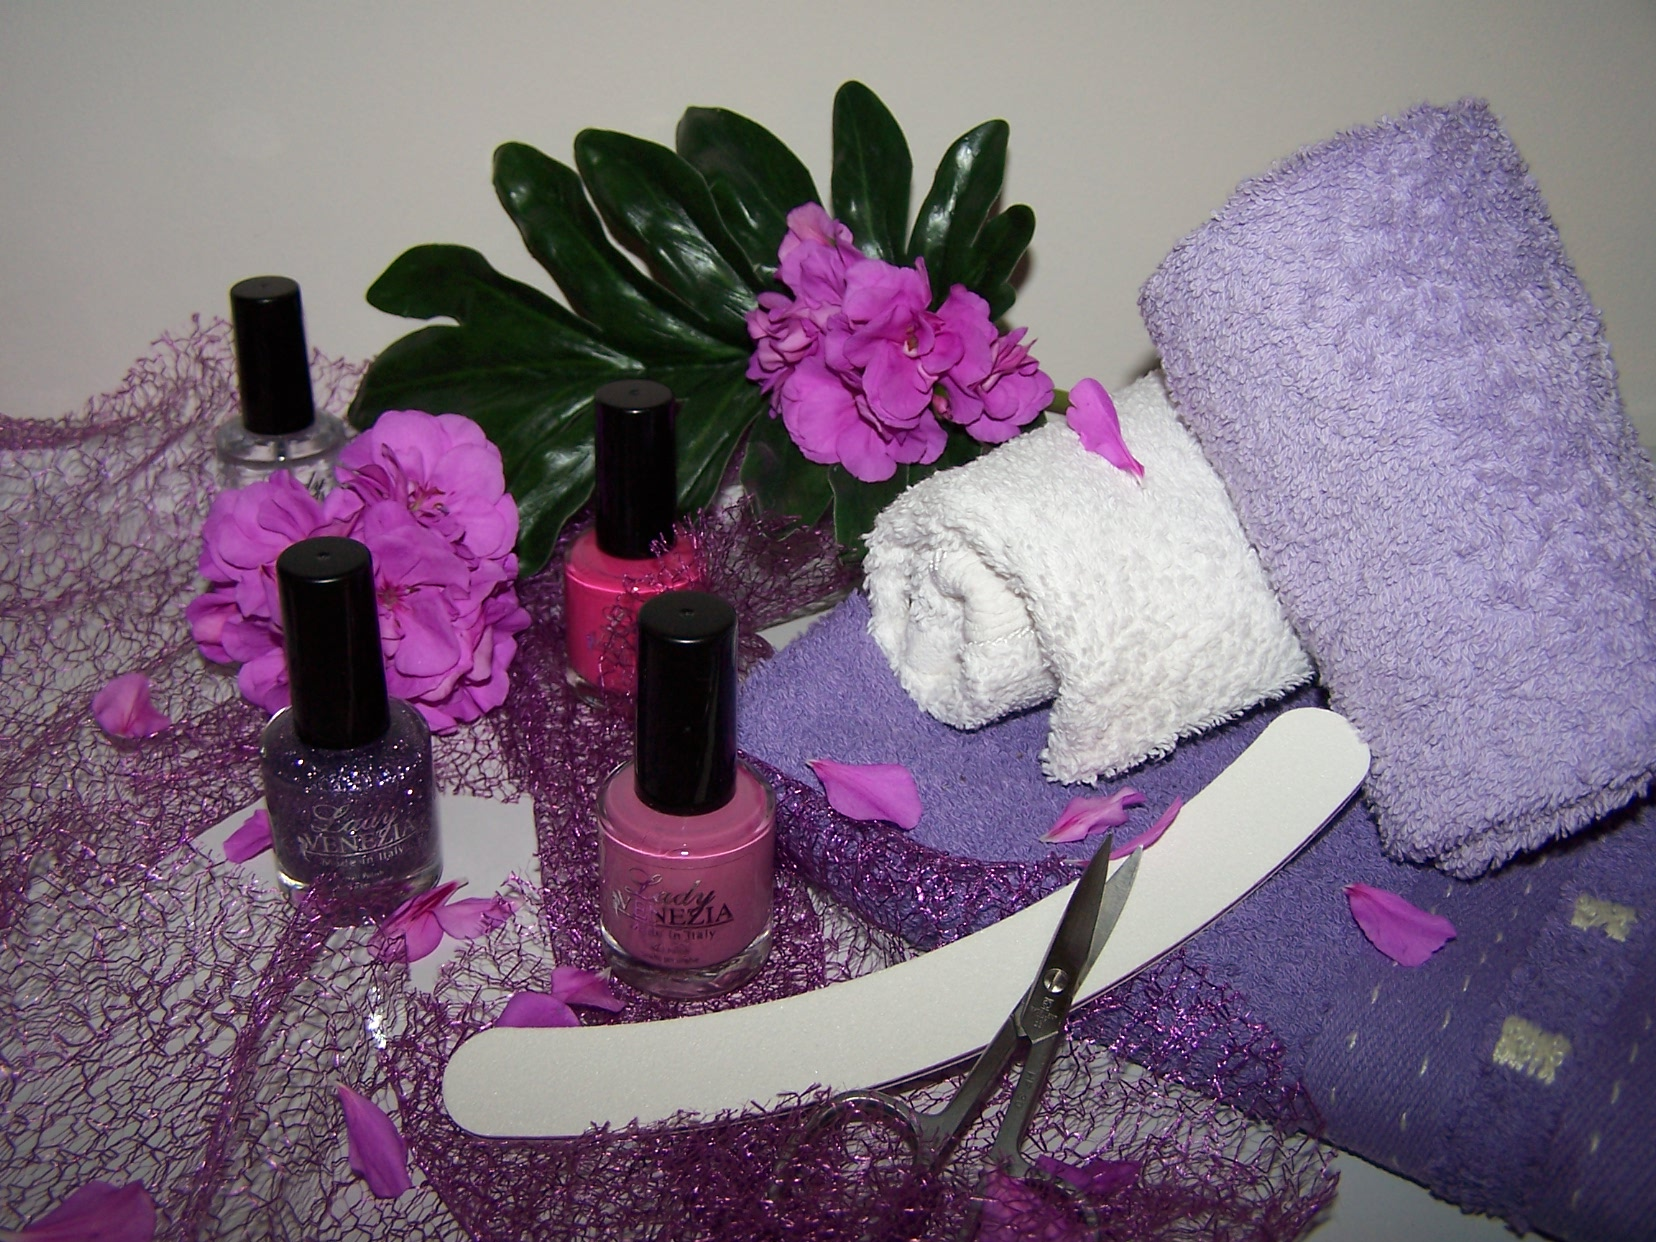 Plan a pamper evening for the ladies